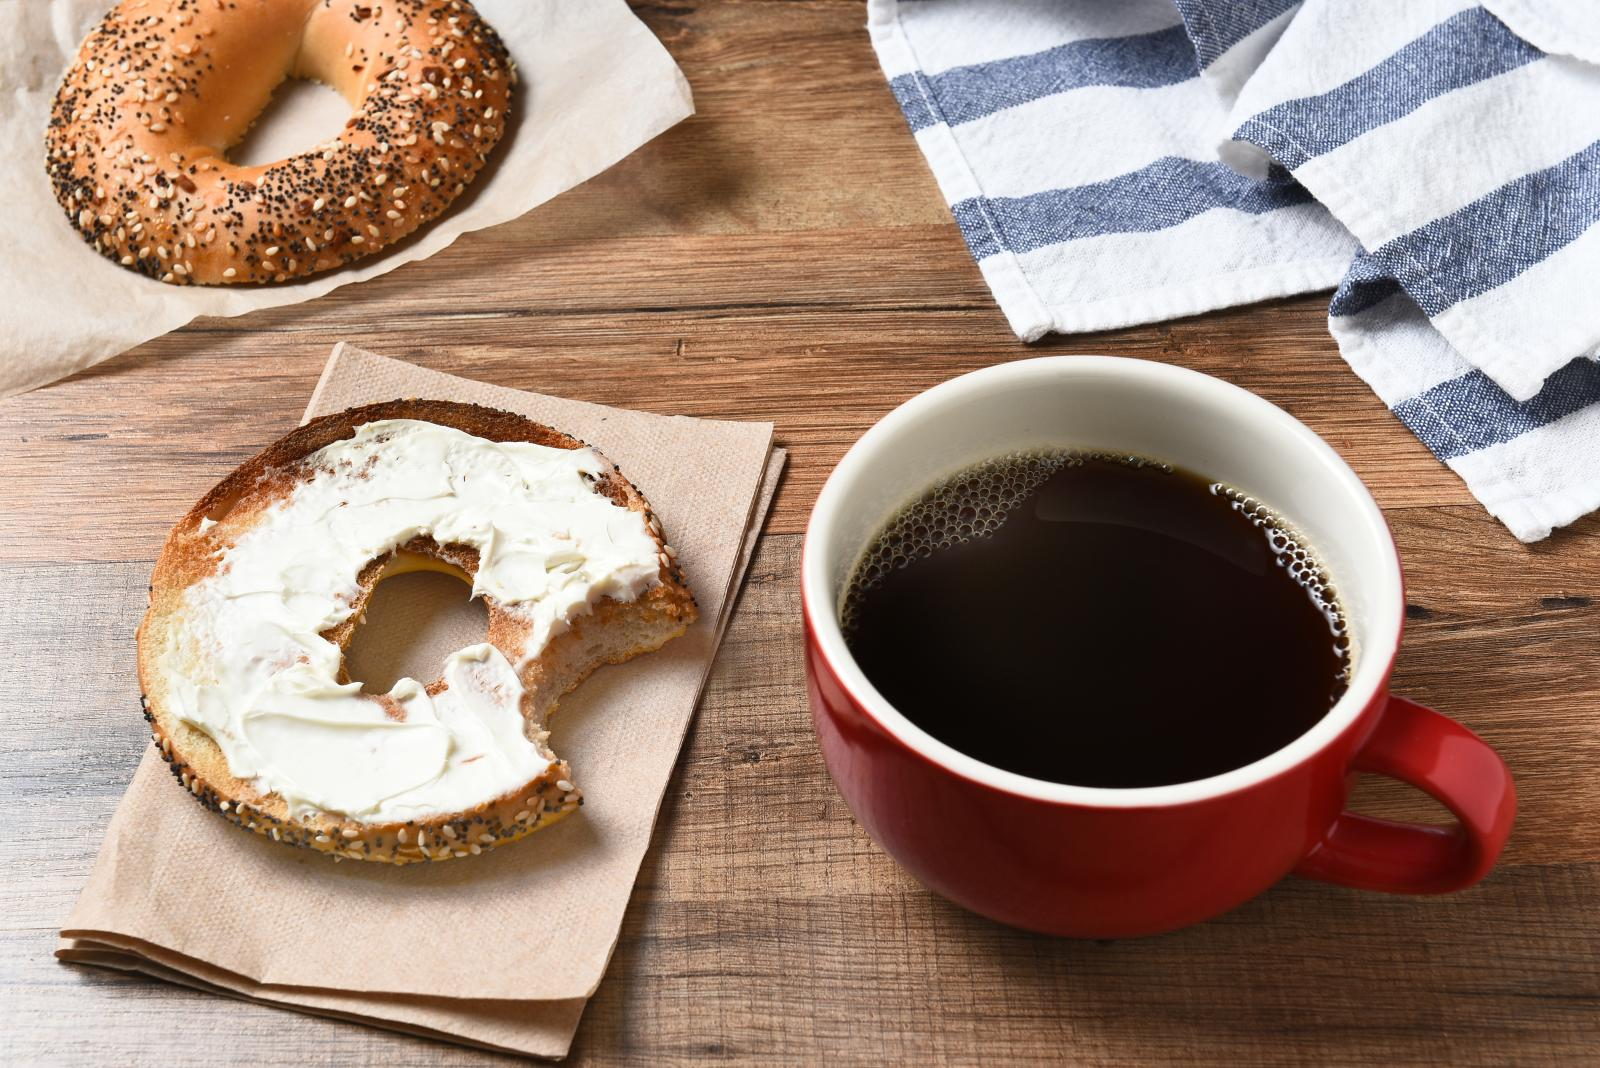 Best Bagel and Coffee